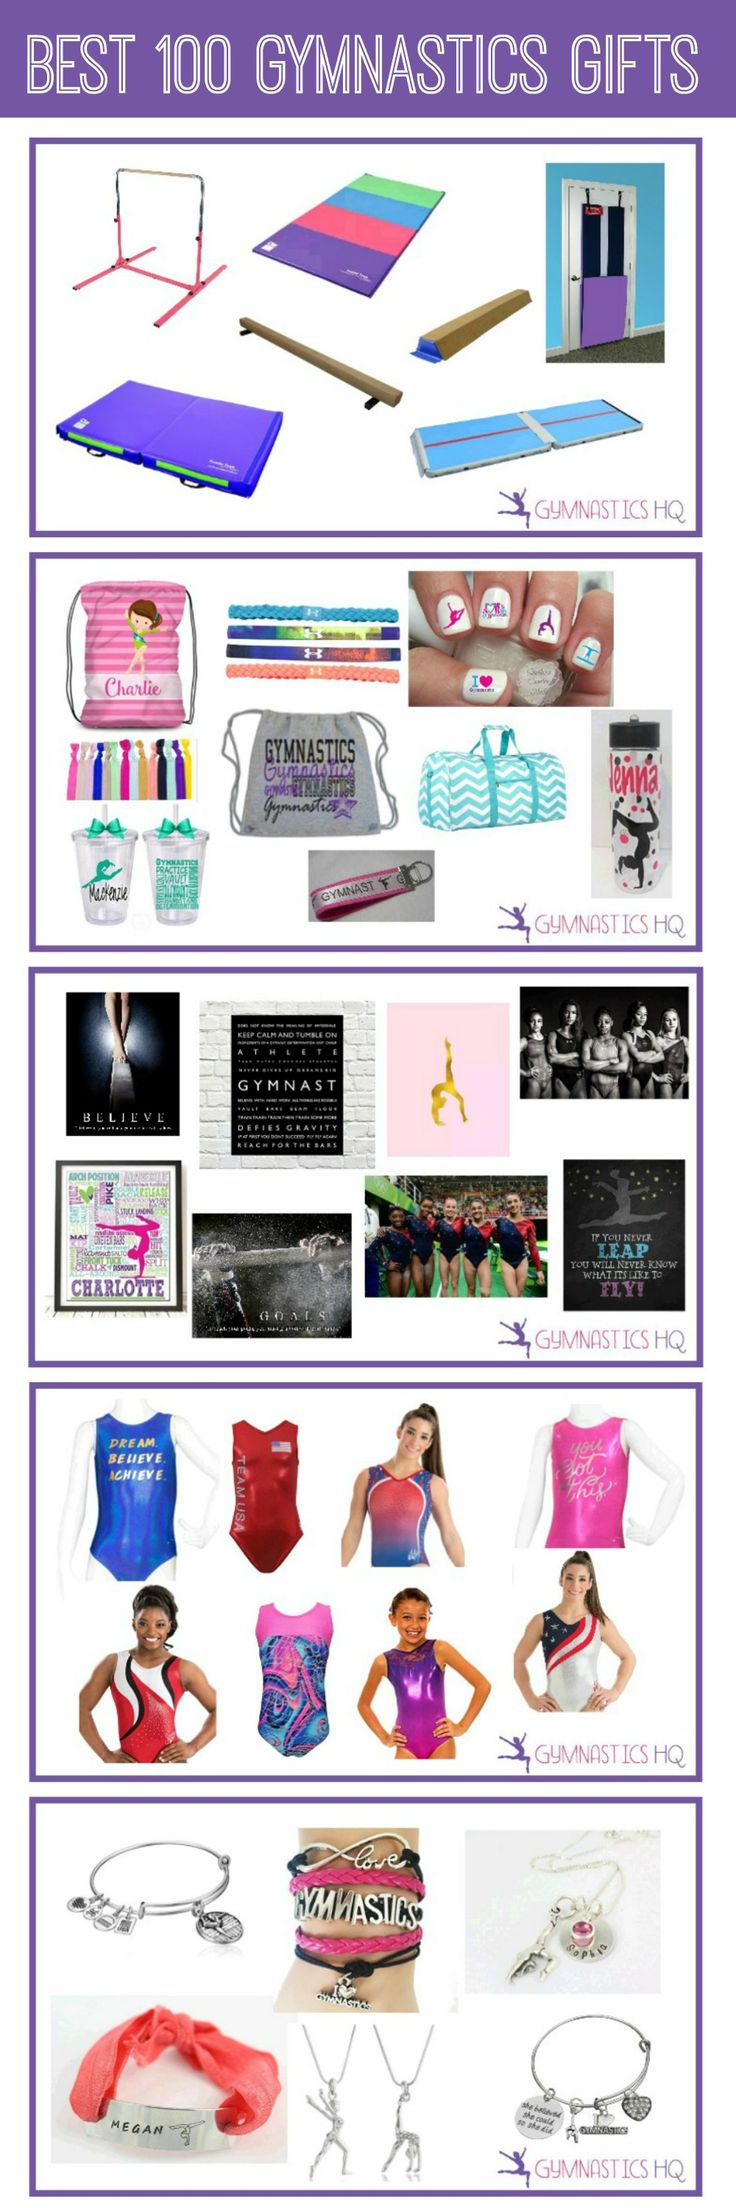 Gymnastics Gift Guide: Best 100 Gymnastics Gifts                                                                                                                                                                                 More